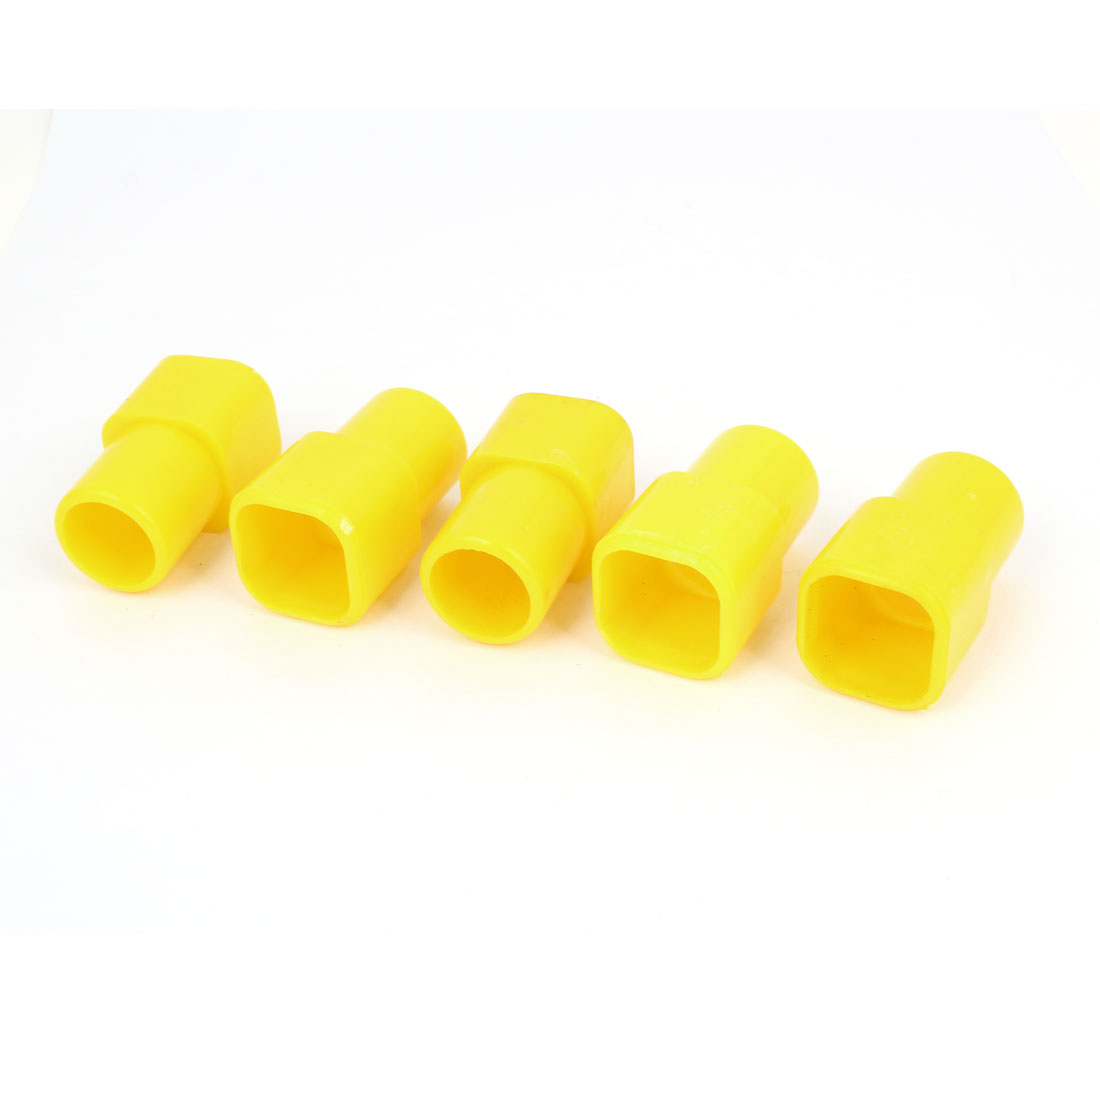 5pcs Yellow Plastic Square Pipe Inner 23mm to Round 20mm Connector for Poultry Chicken Rabbit